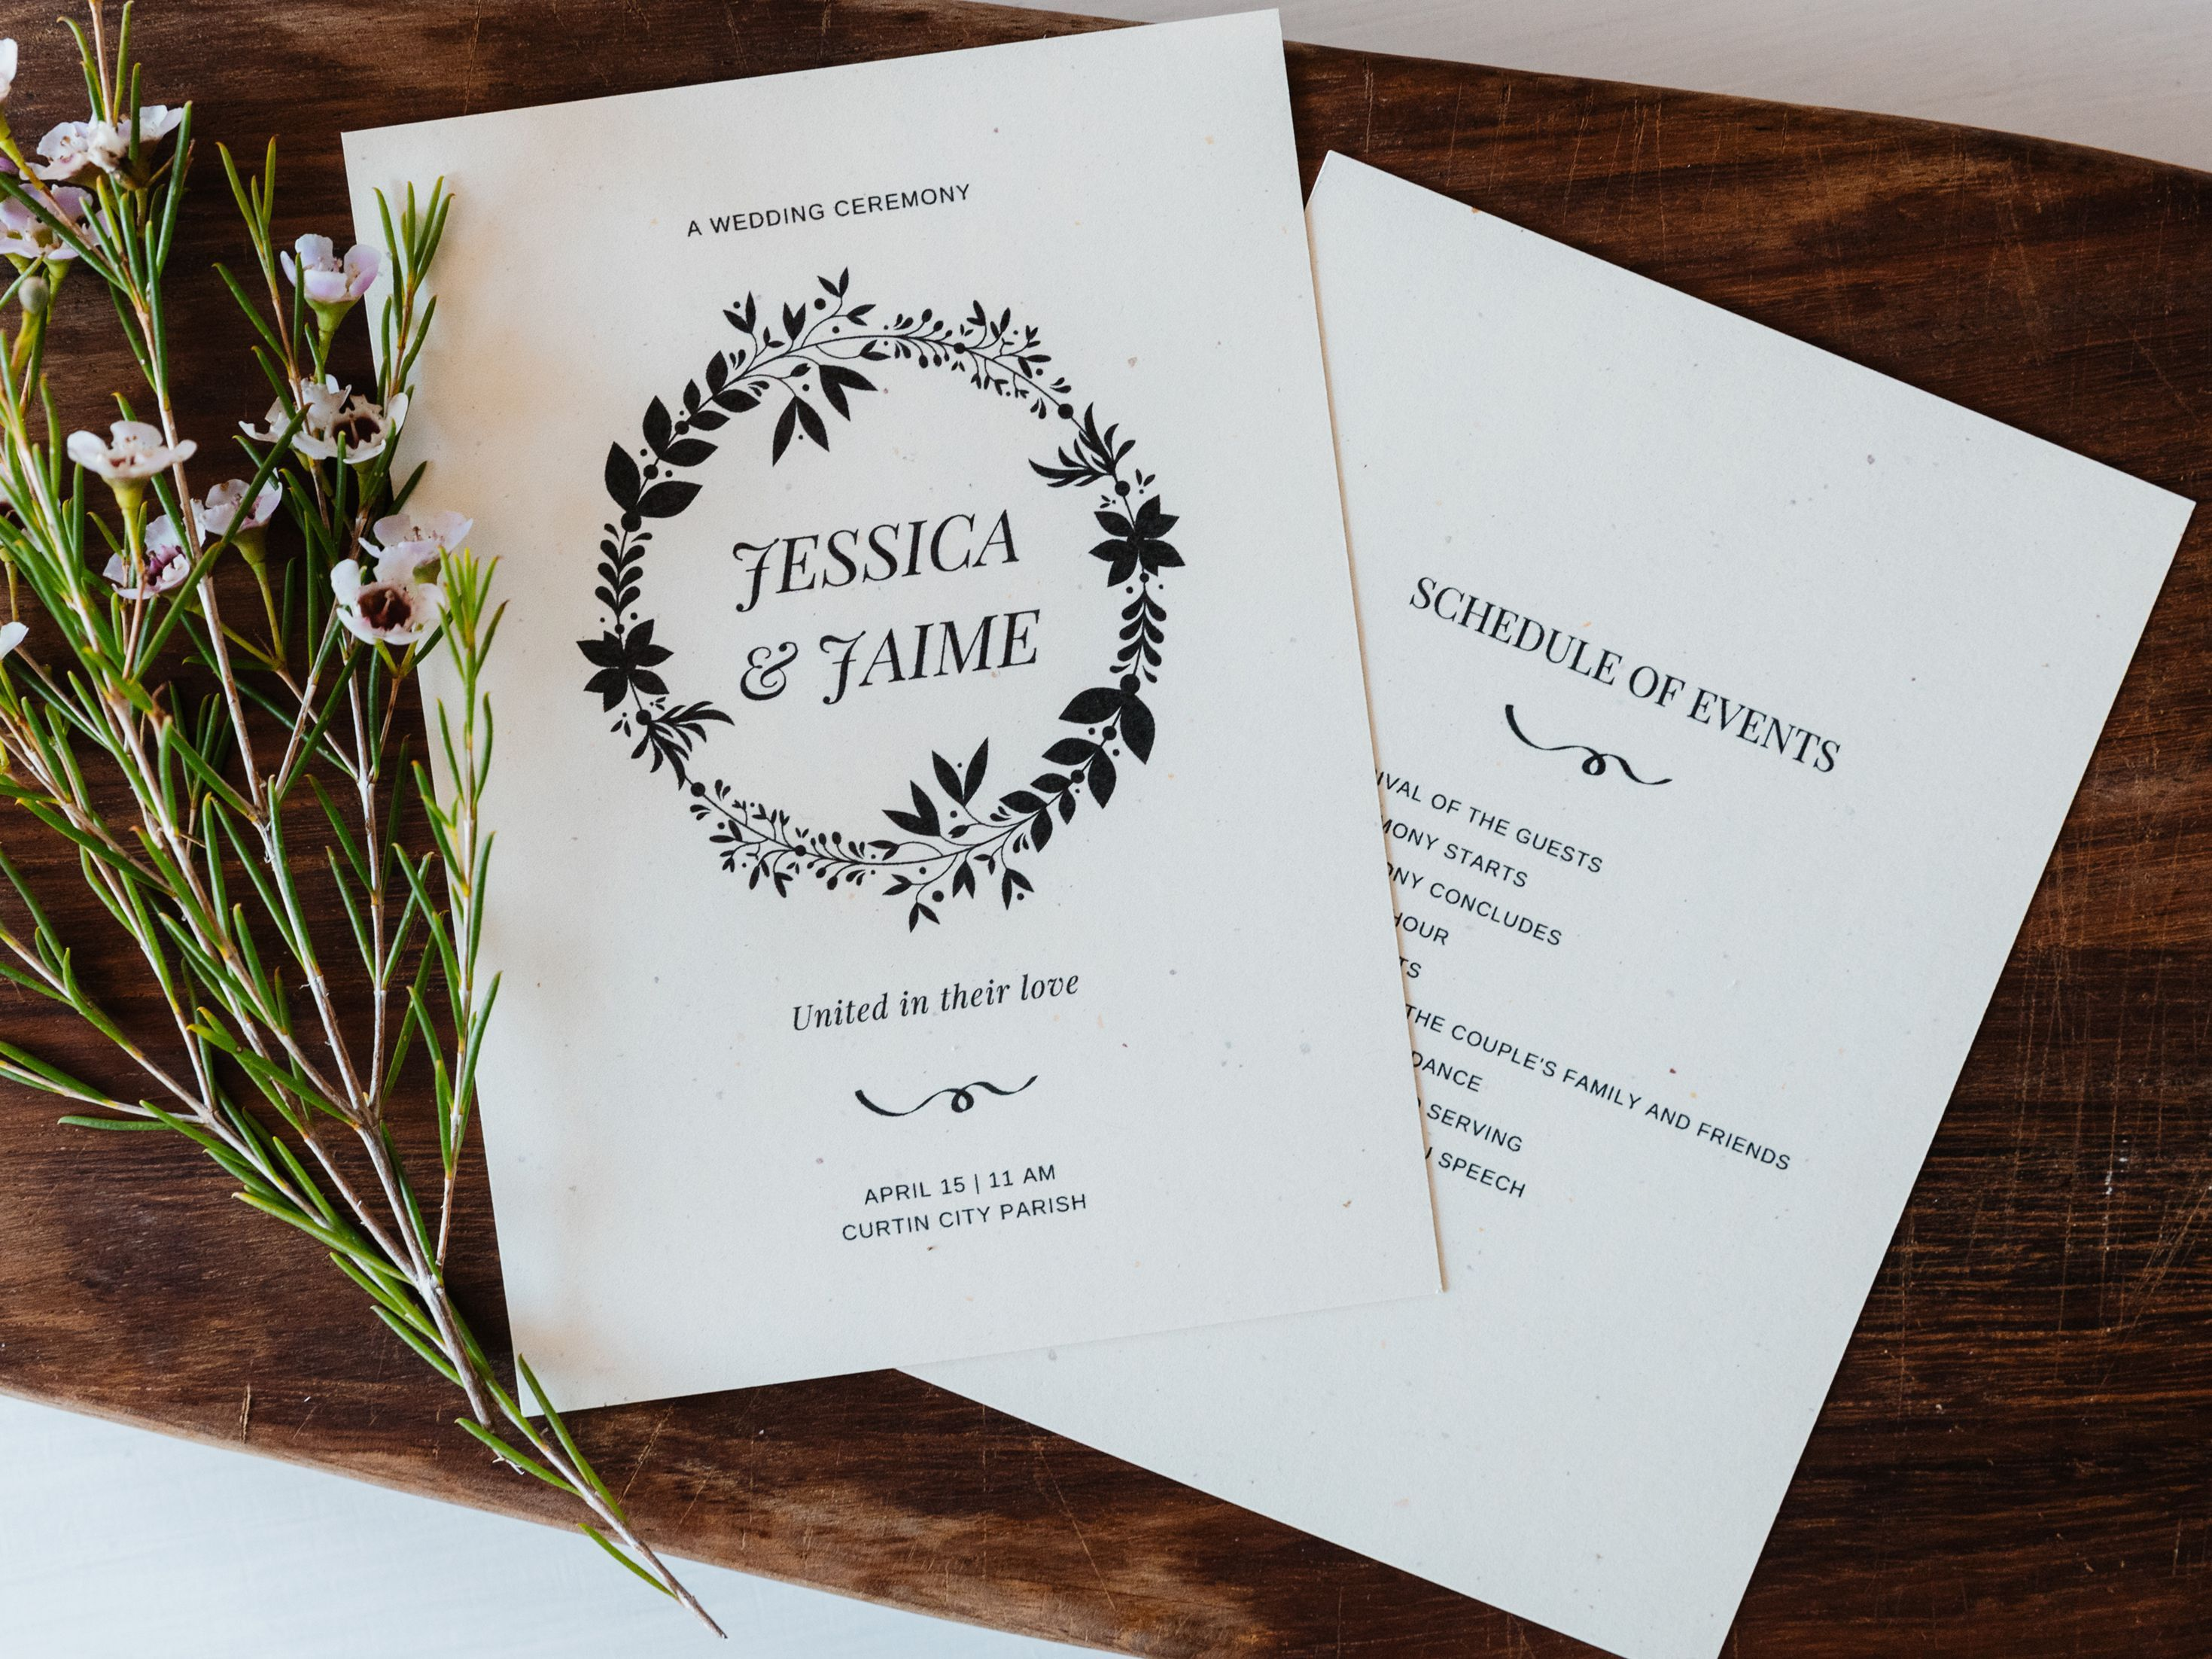 003 Phenomenal Traditional Wedding Order Of Service Template Uk High Resolution Full